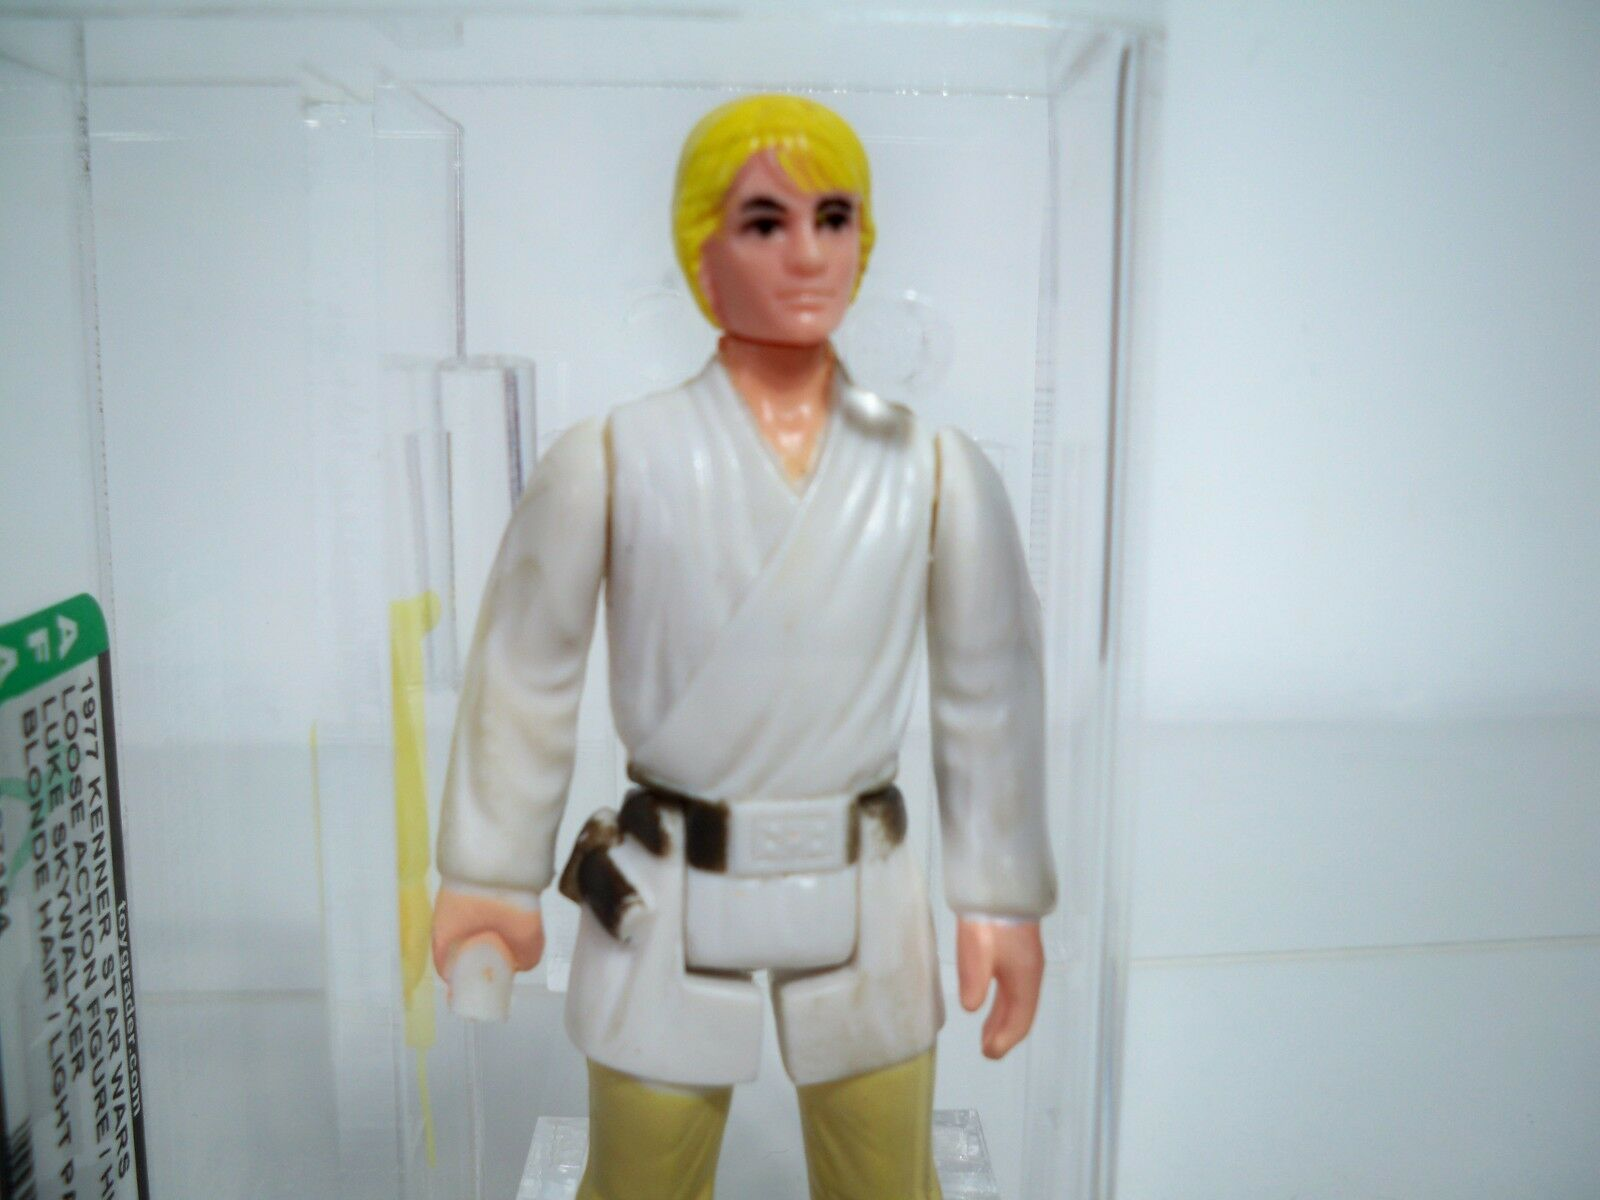 D0584371 LUKE SKYWALKER AFA 80 NM STAR WARS 1977 KENNER LIGHT PANTS BLOND HAIR